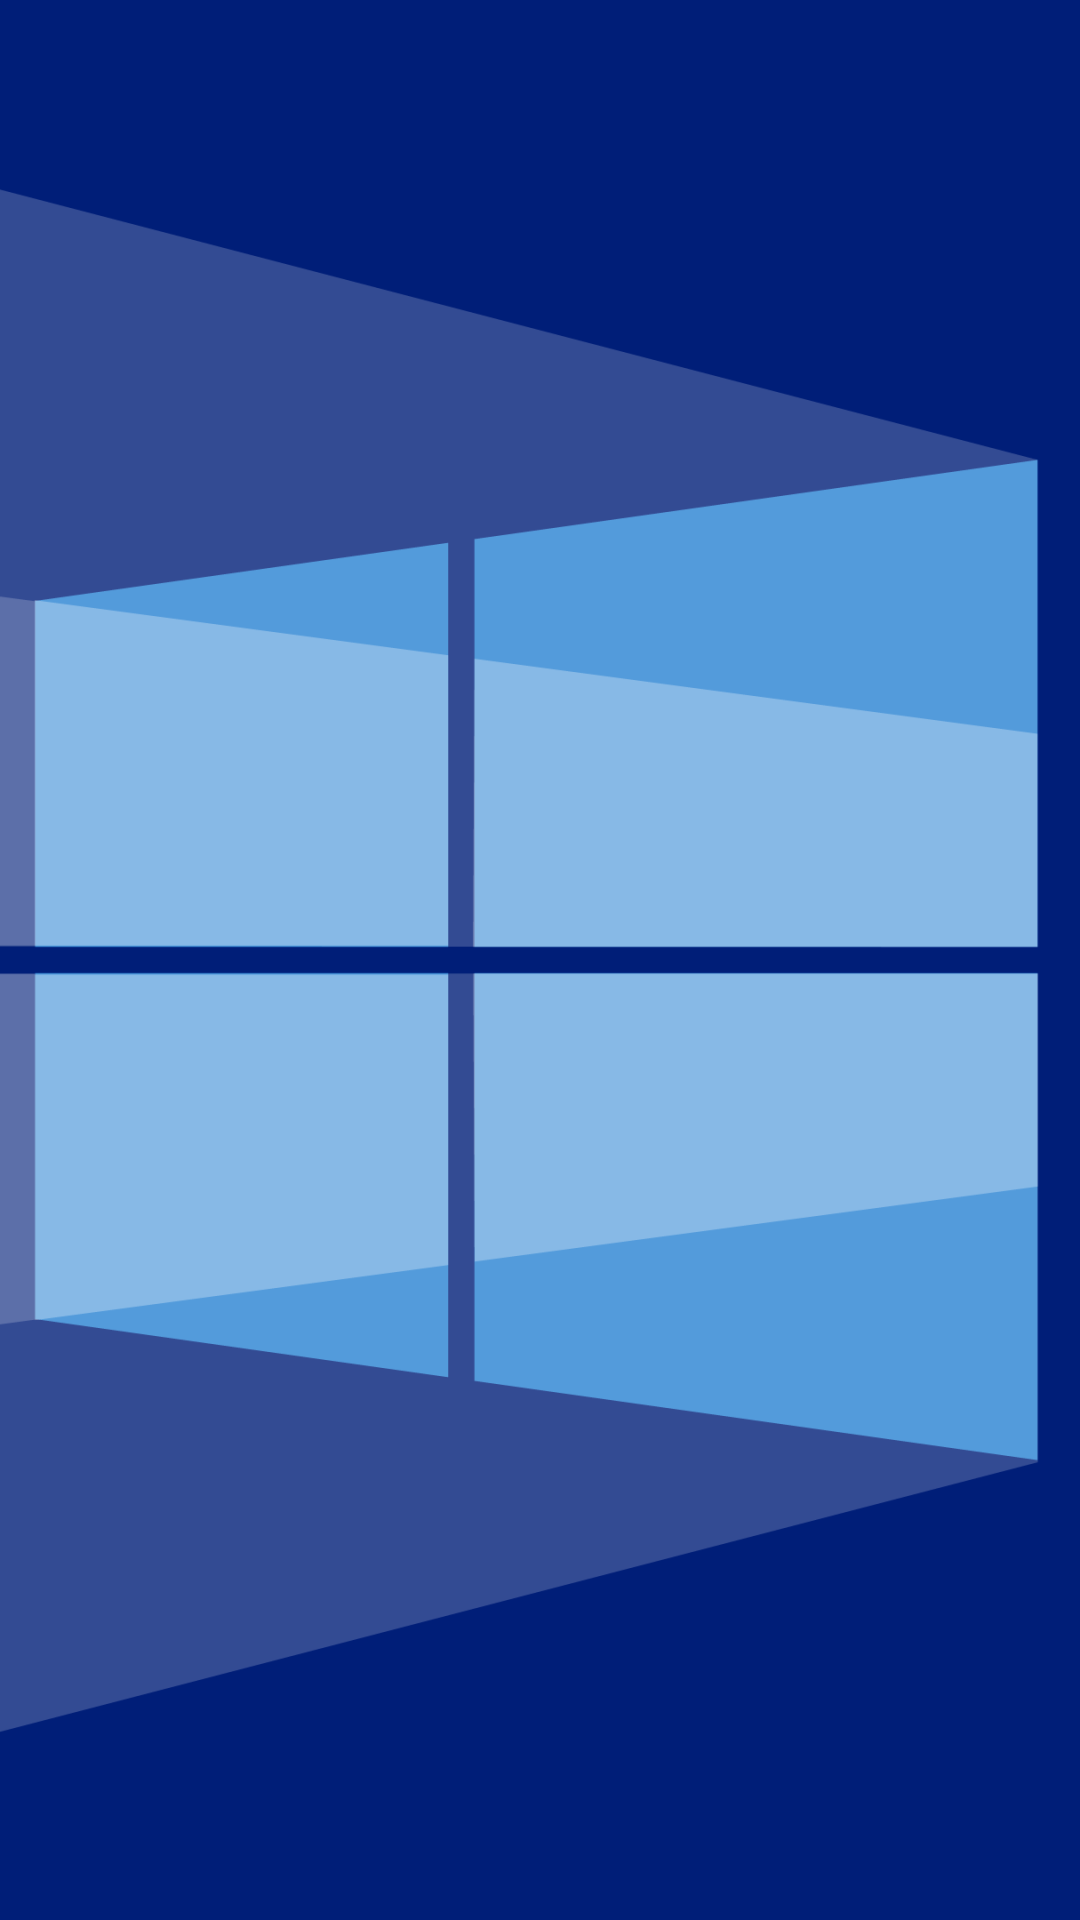 Microsoft Windows Phone 10 Wallpaper